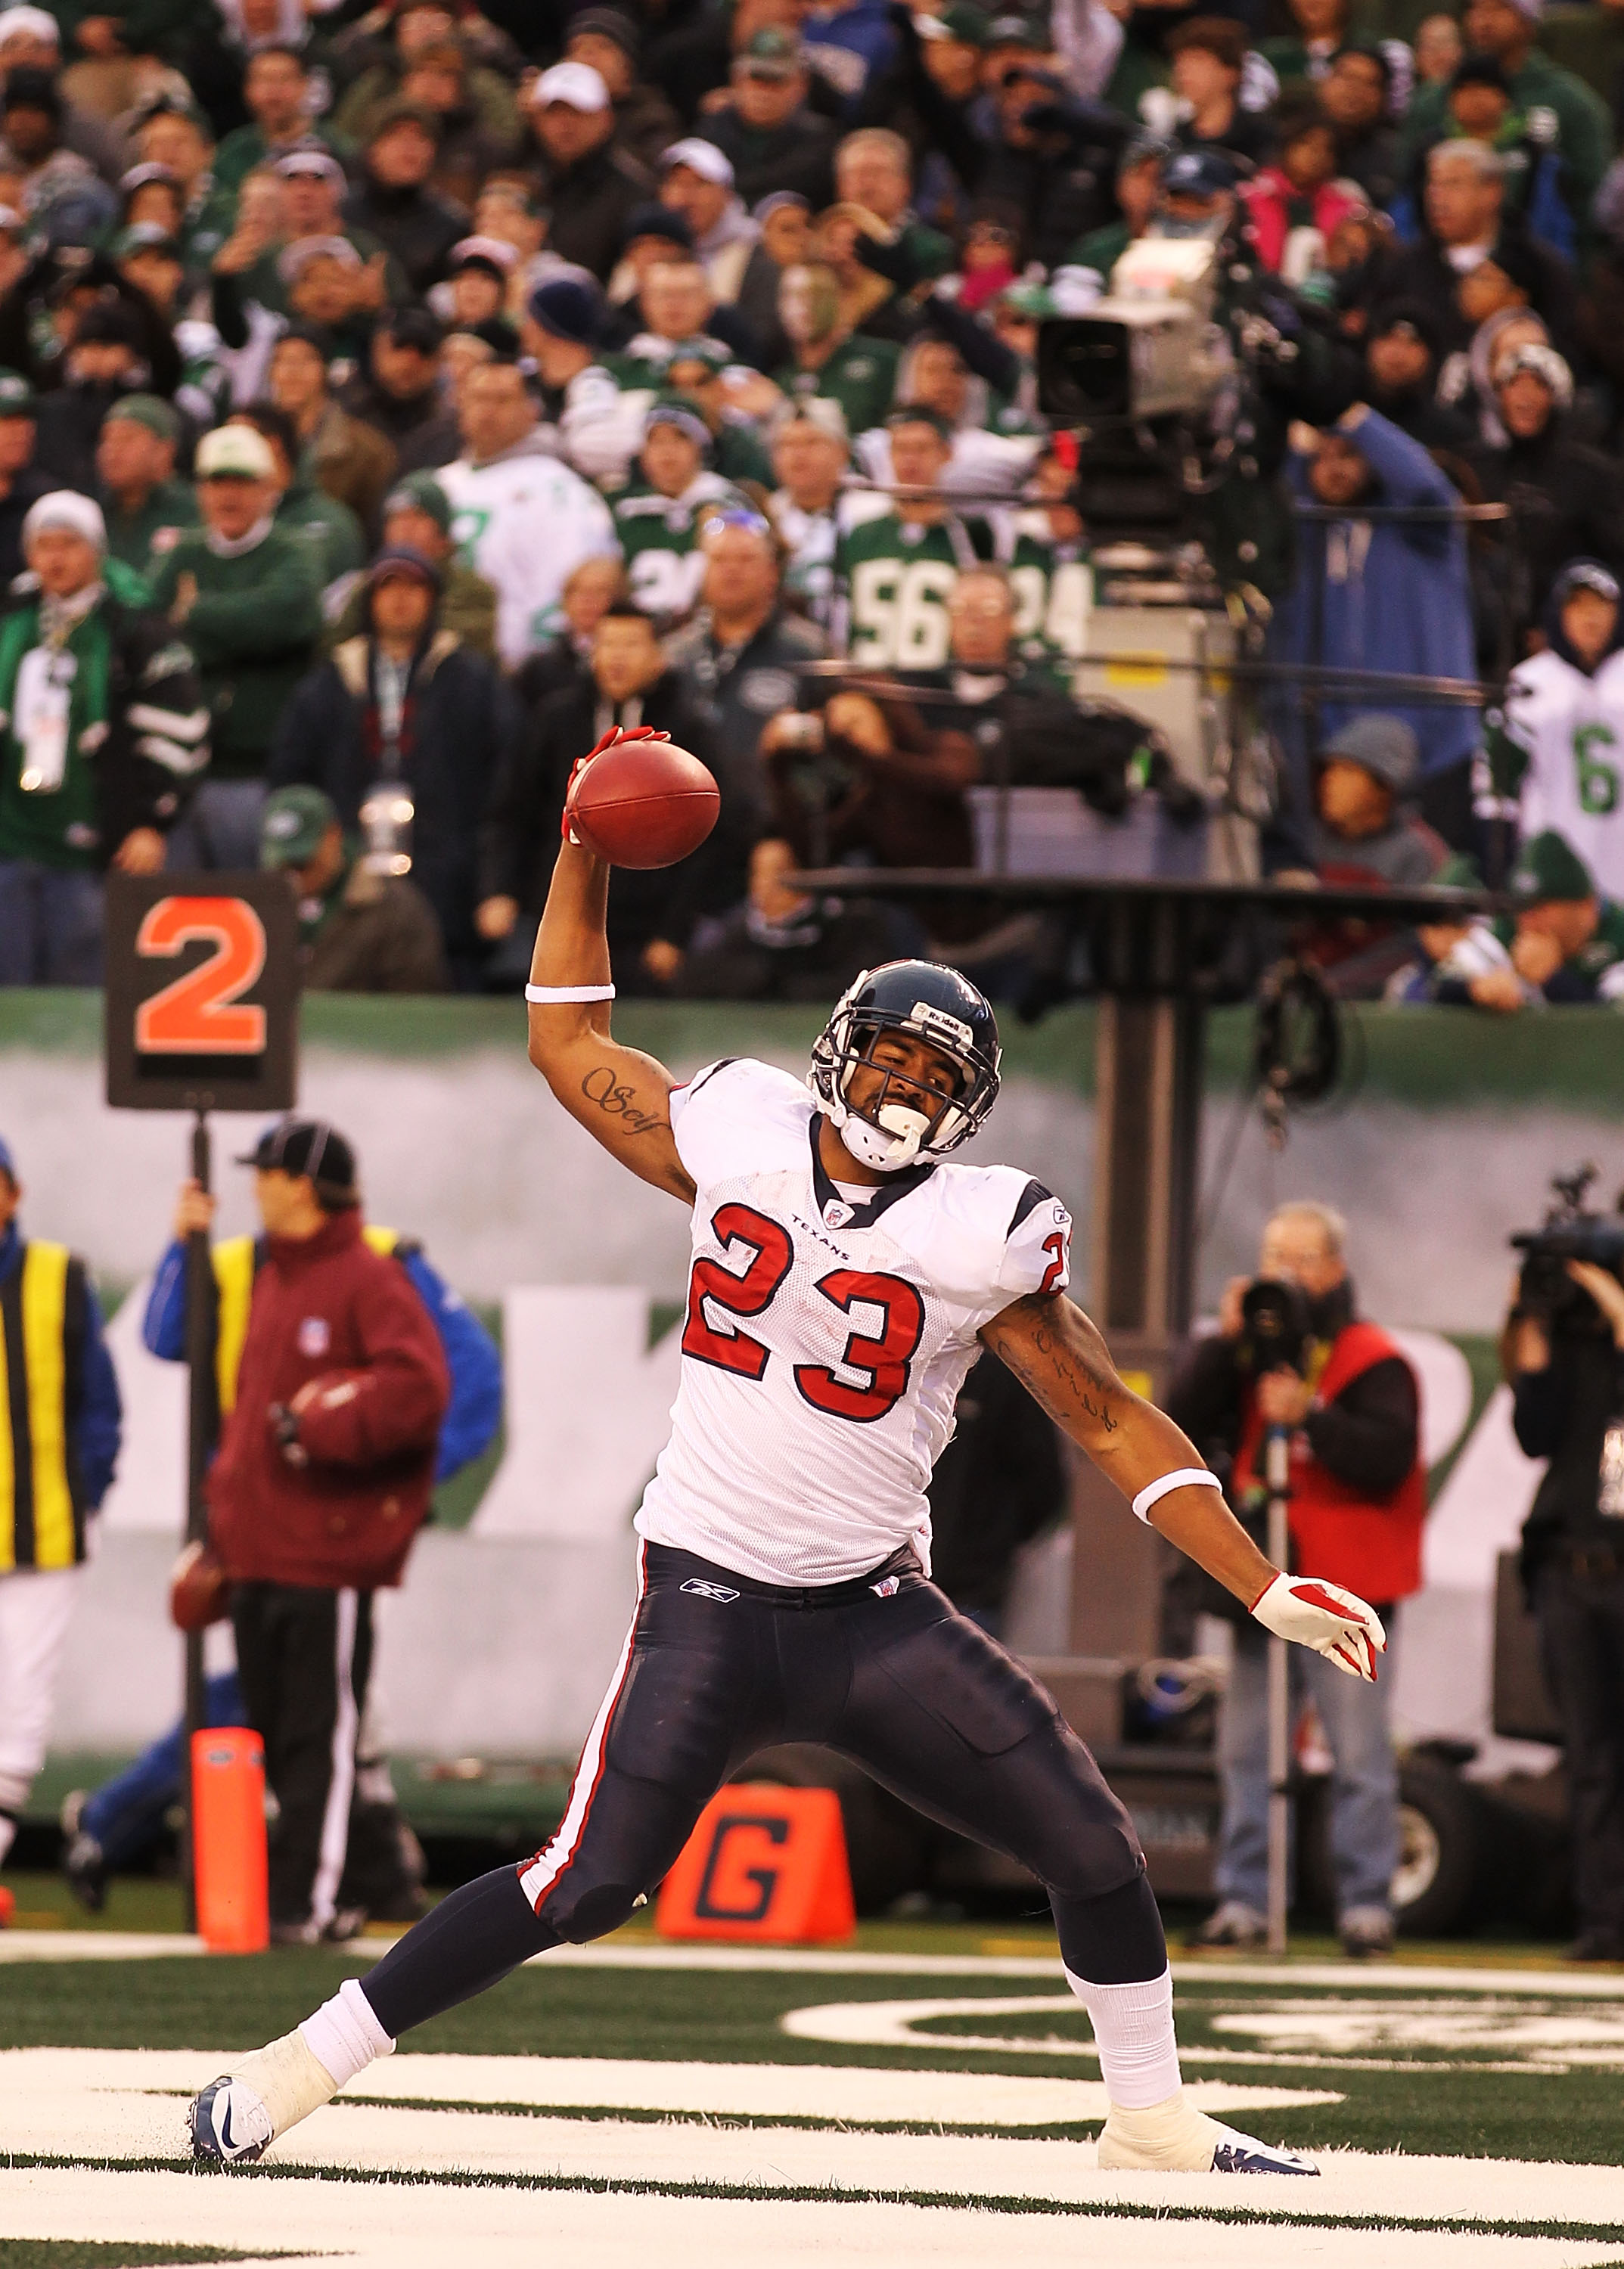 EAST RUTHERFORD, NJ - NOVEMBER 21:  Arian Foster #23 of the Houston Texans celebrates after scoring a touchdown against the New York Jets during their  game on November 21, 2010 at the New Meadowlands Stadium  in East Rutherford, New Jersey.  (Photo by Al